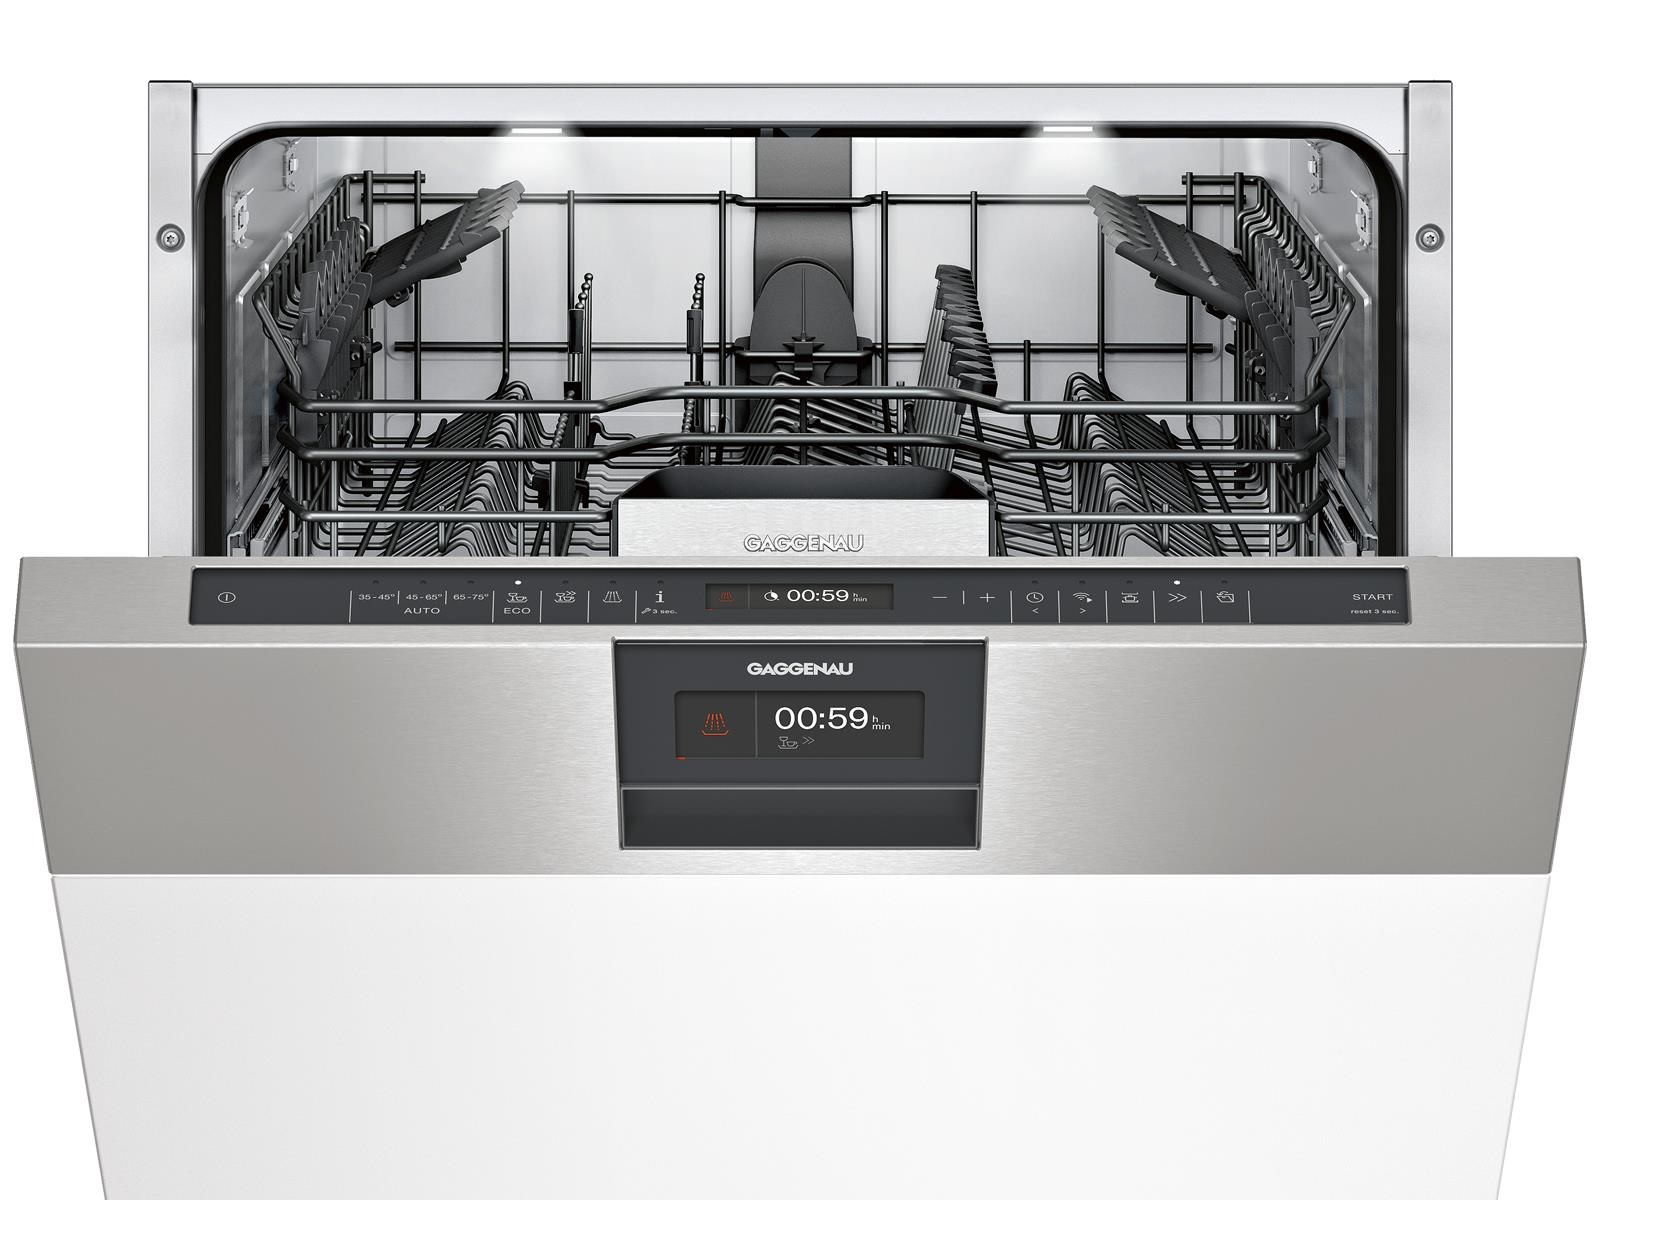 Gaggenau DI261112 Dishwasher